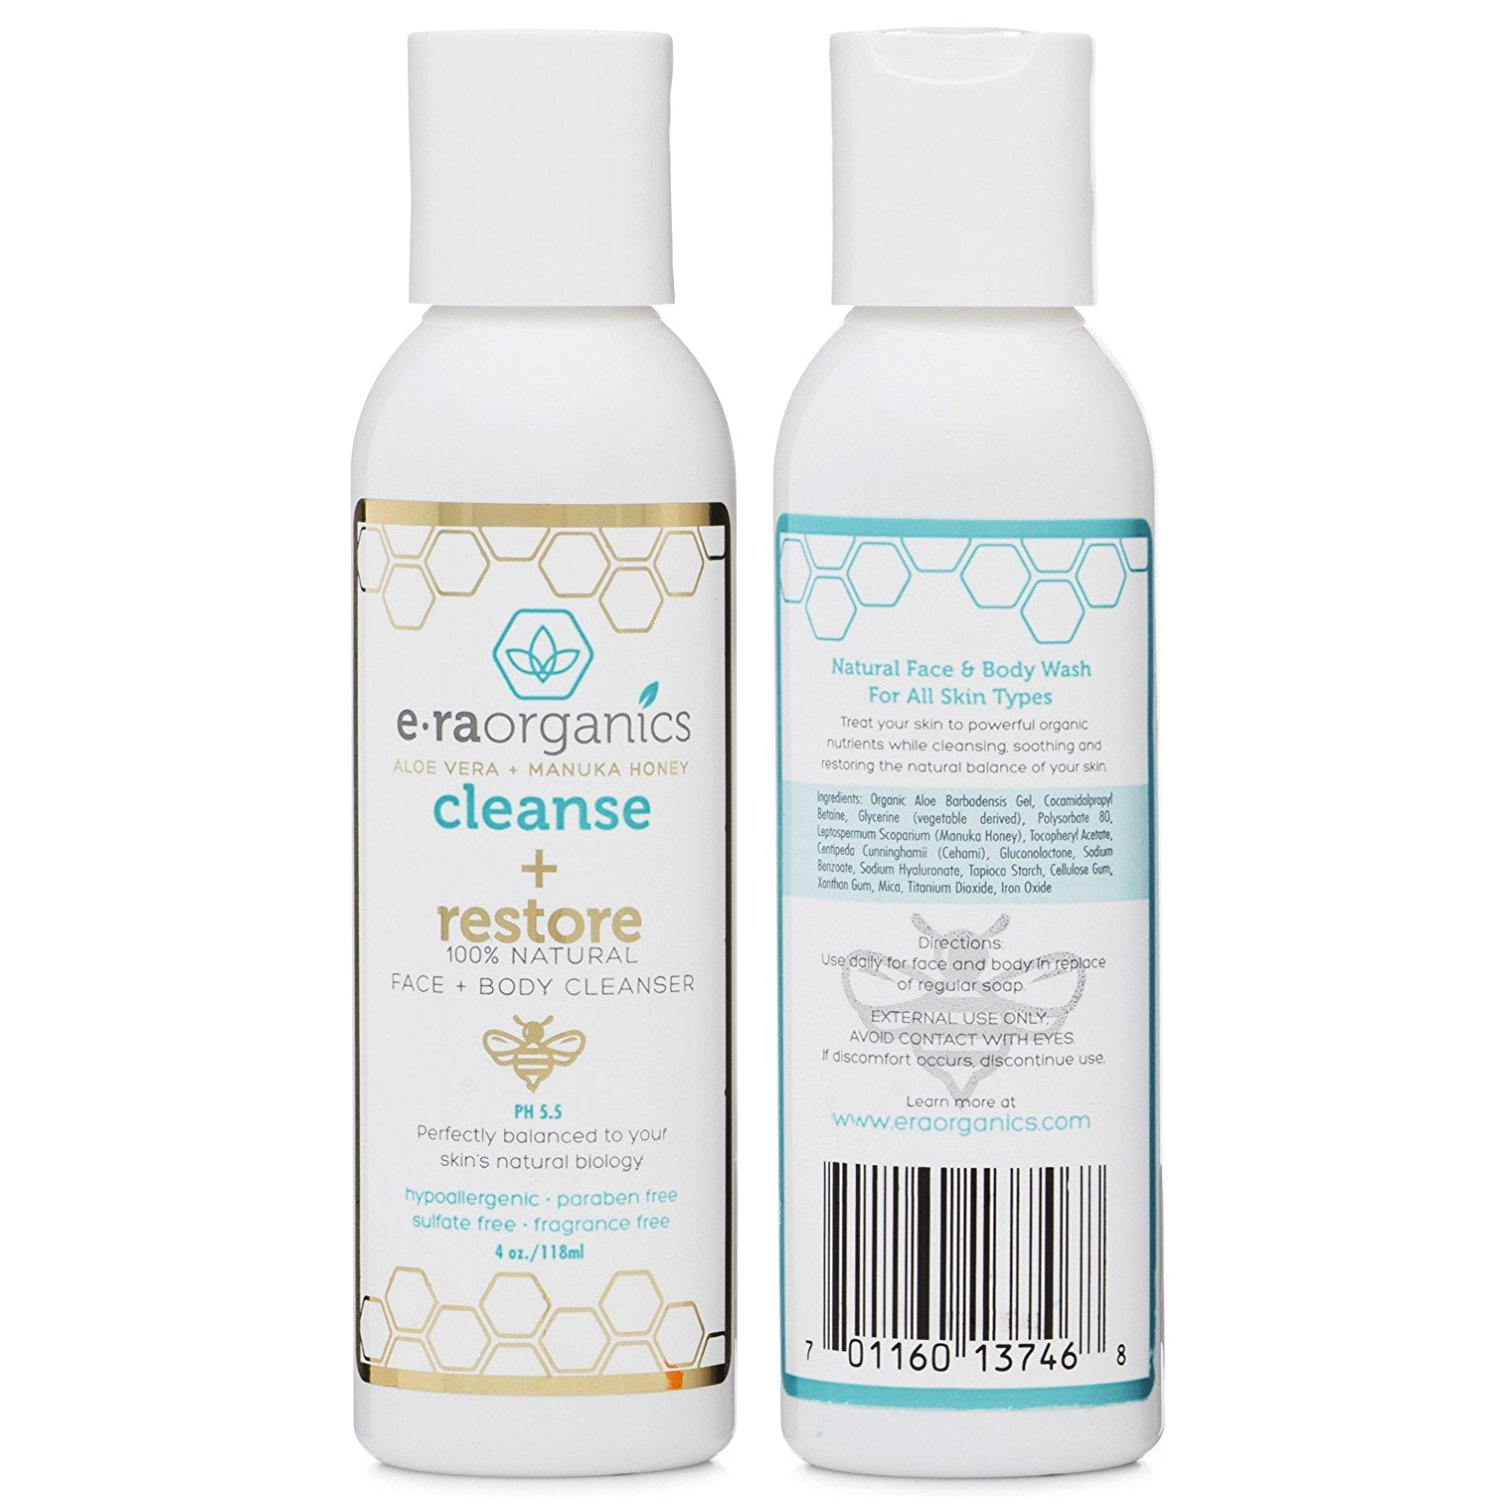 Cleanse + Restore Natural Face and Body Wash for Sensitive Skin – Era Organics